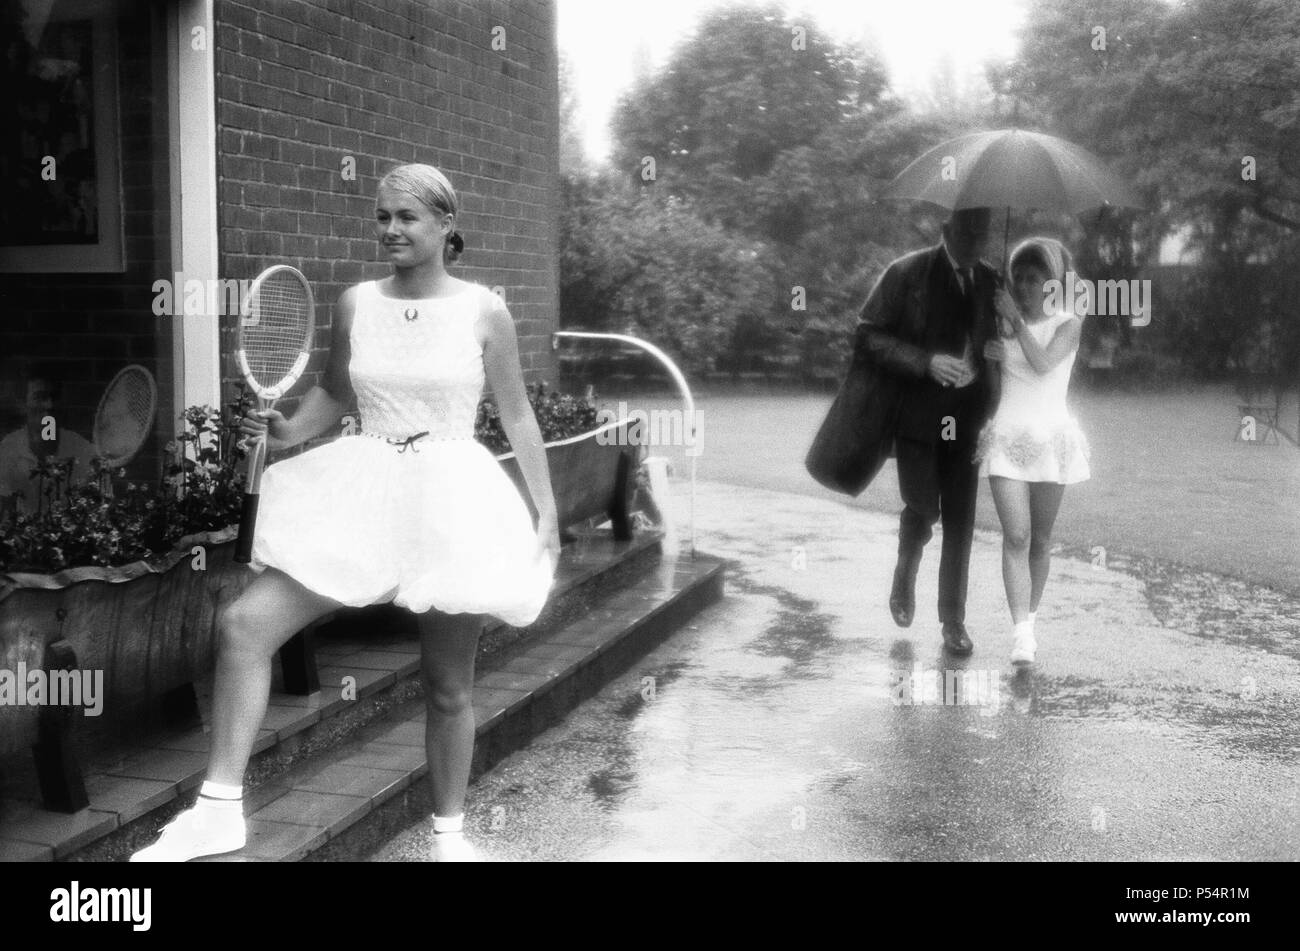 Lea Pericoli v Susanna Alexander at the rain soaked pre Wimbledon garden party at the Hurlingham Club. The girls were there braving the deluge, to show off their new tennis dresses. And Italy's Lea, that's her sharing an umbrella with designer Teddy Tinling, wouldn't pose with Australian girl Susanna. Lea's dress you see is a Tinling creation. And Susanna is wearing a Fred Perry bloomer outfit. 26th June 1967 - Stock Image